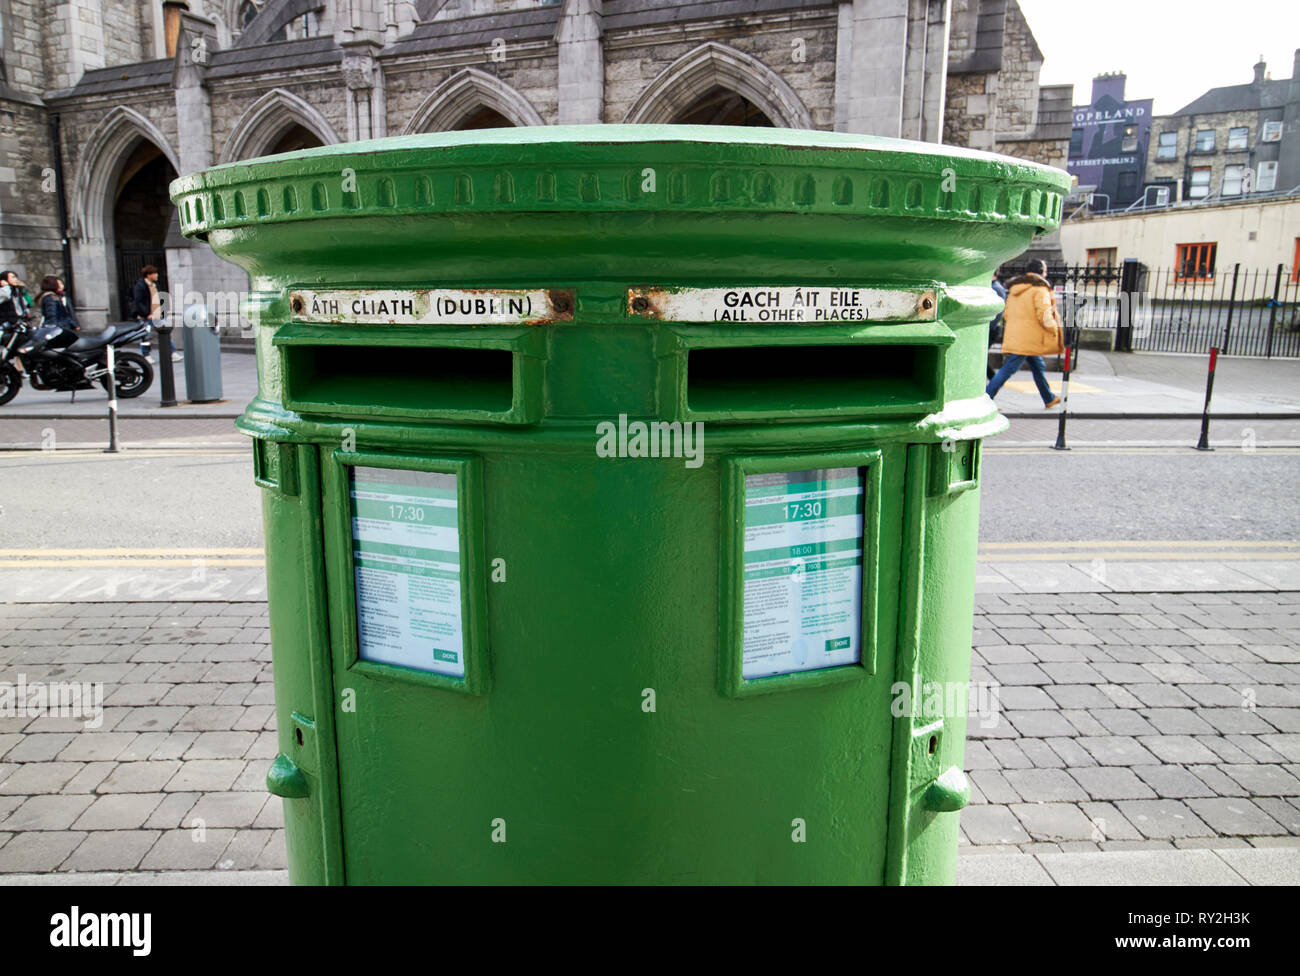 green irish double post box with the old posts and telegraphs p t logo Dublin Republic of Ireland Europe - Stock Image